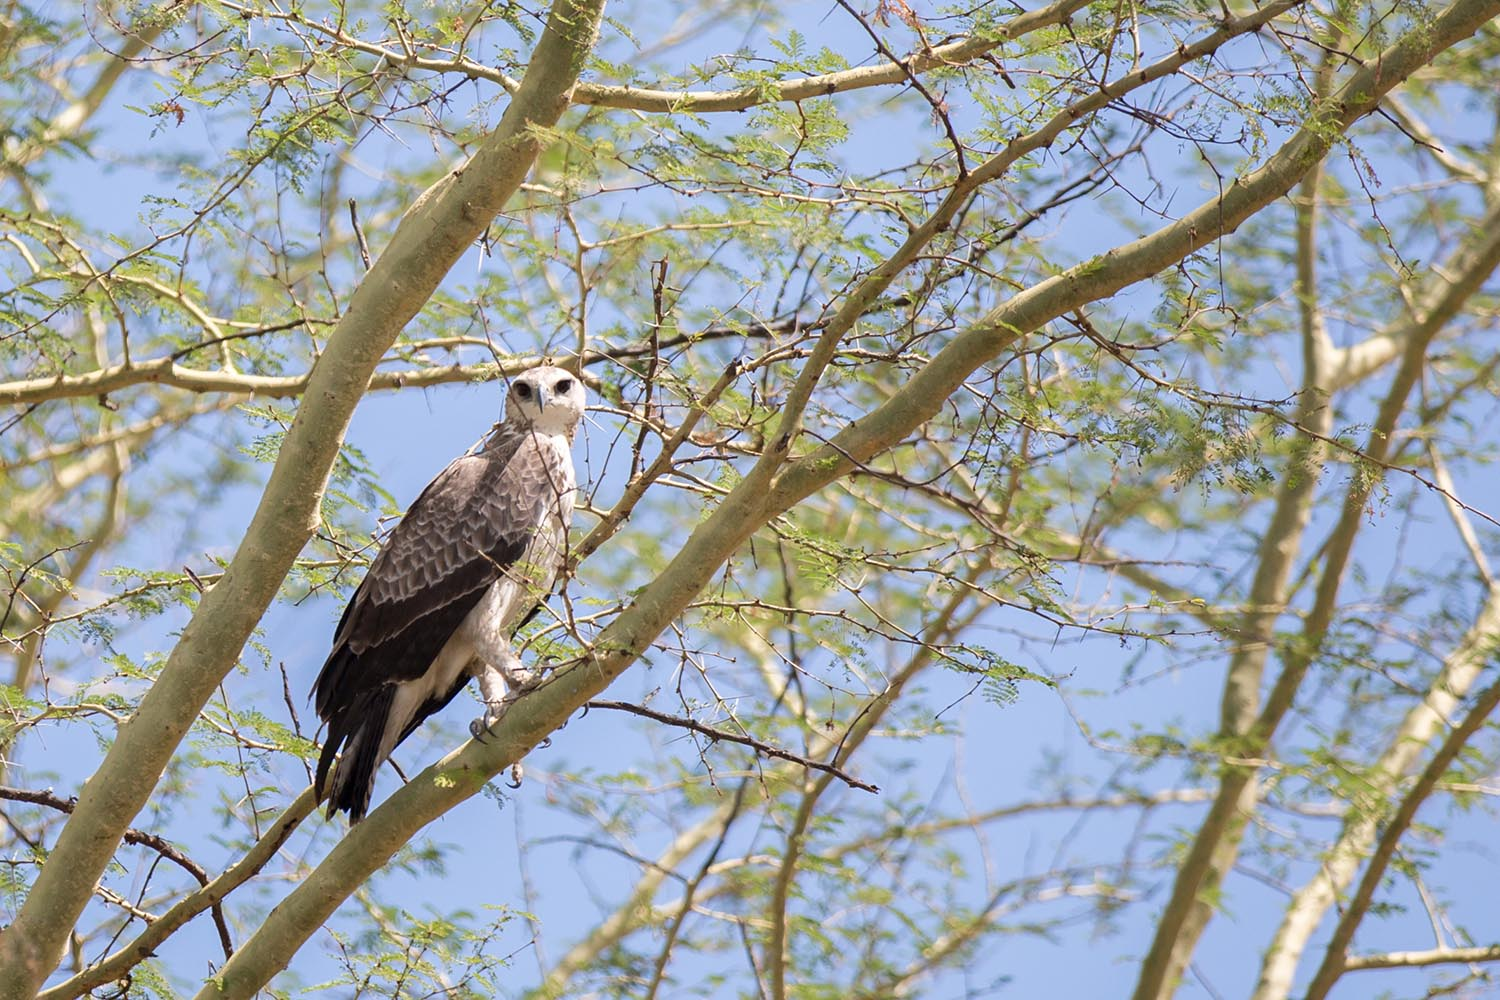 liwonde national park malawian-style-malawi-adventures-experiences-holidays-specialist-tour-operator-malawi-national-parks-reserves-birding